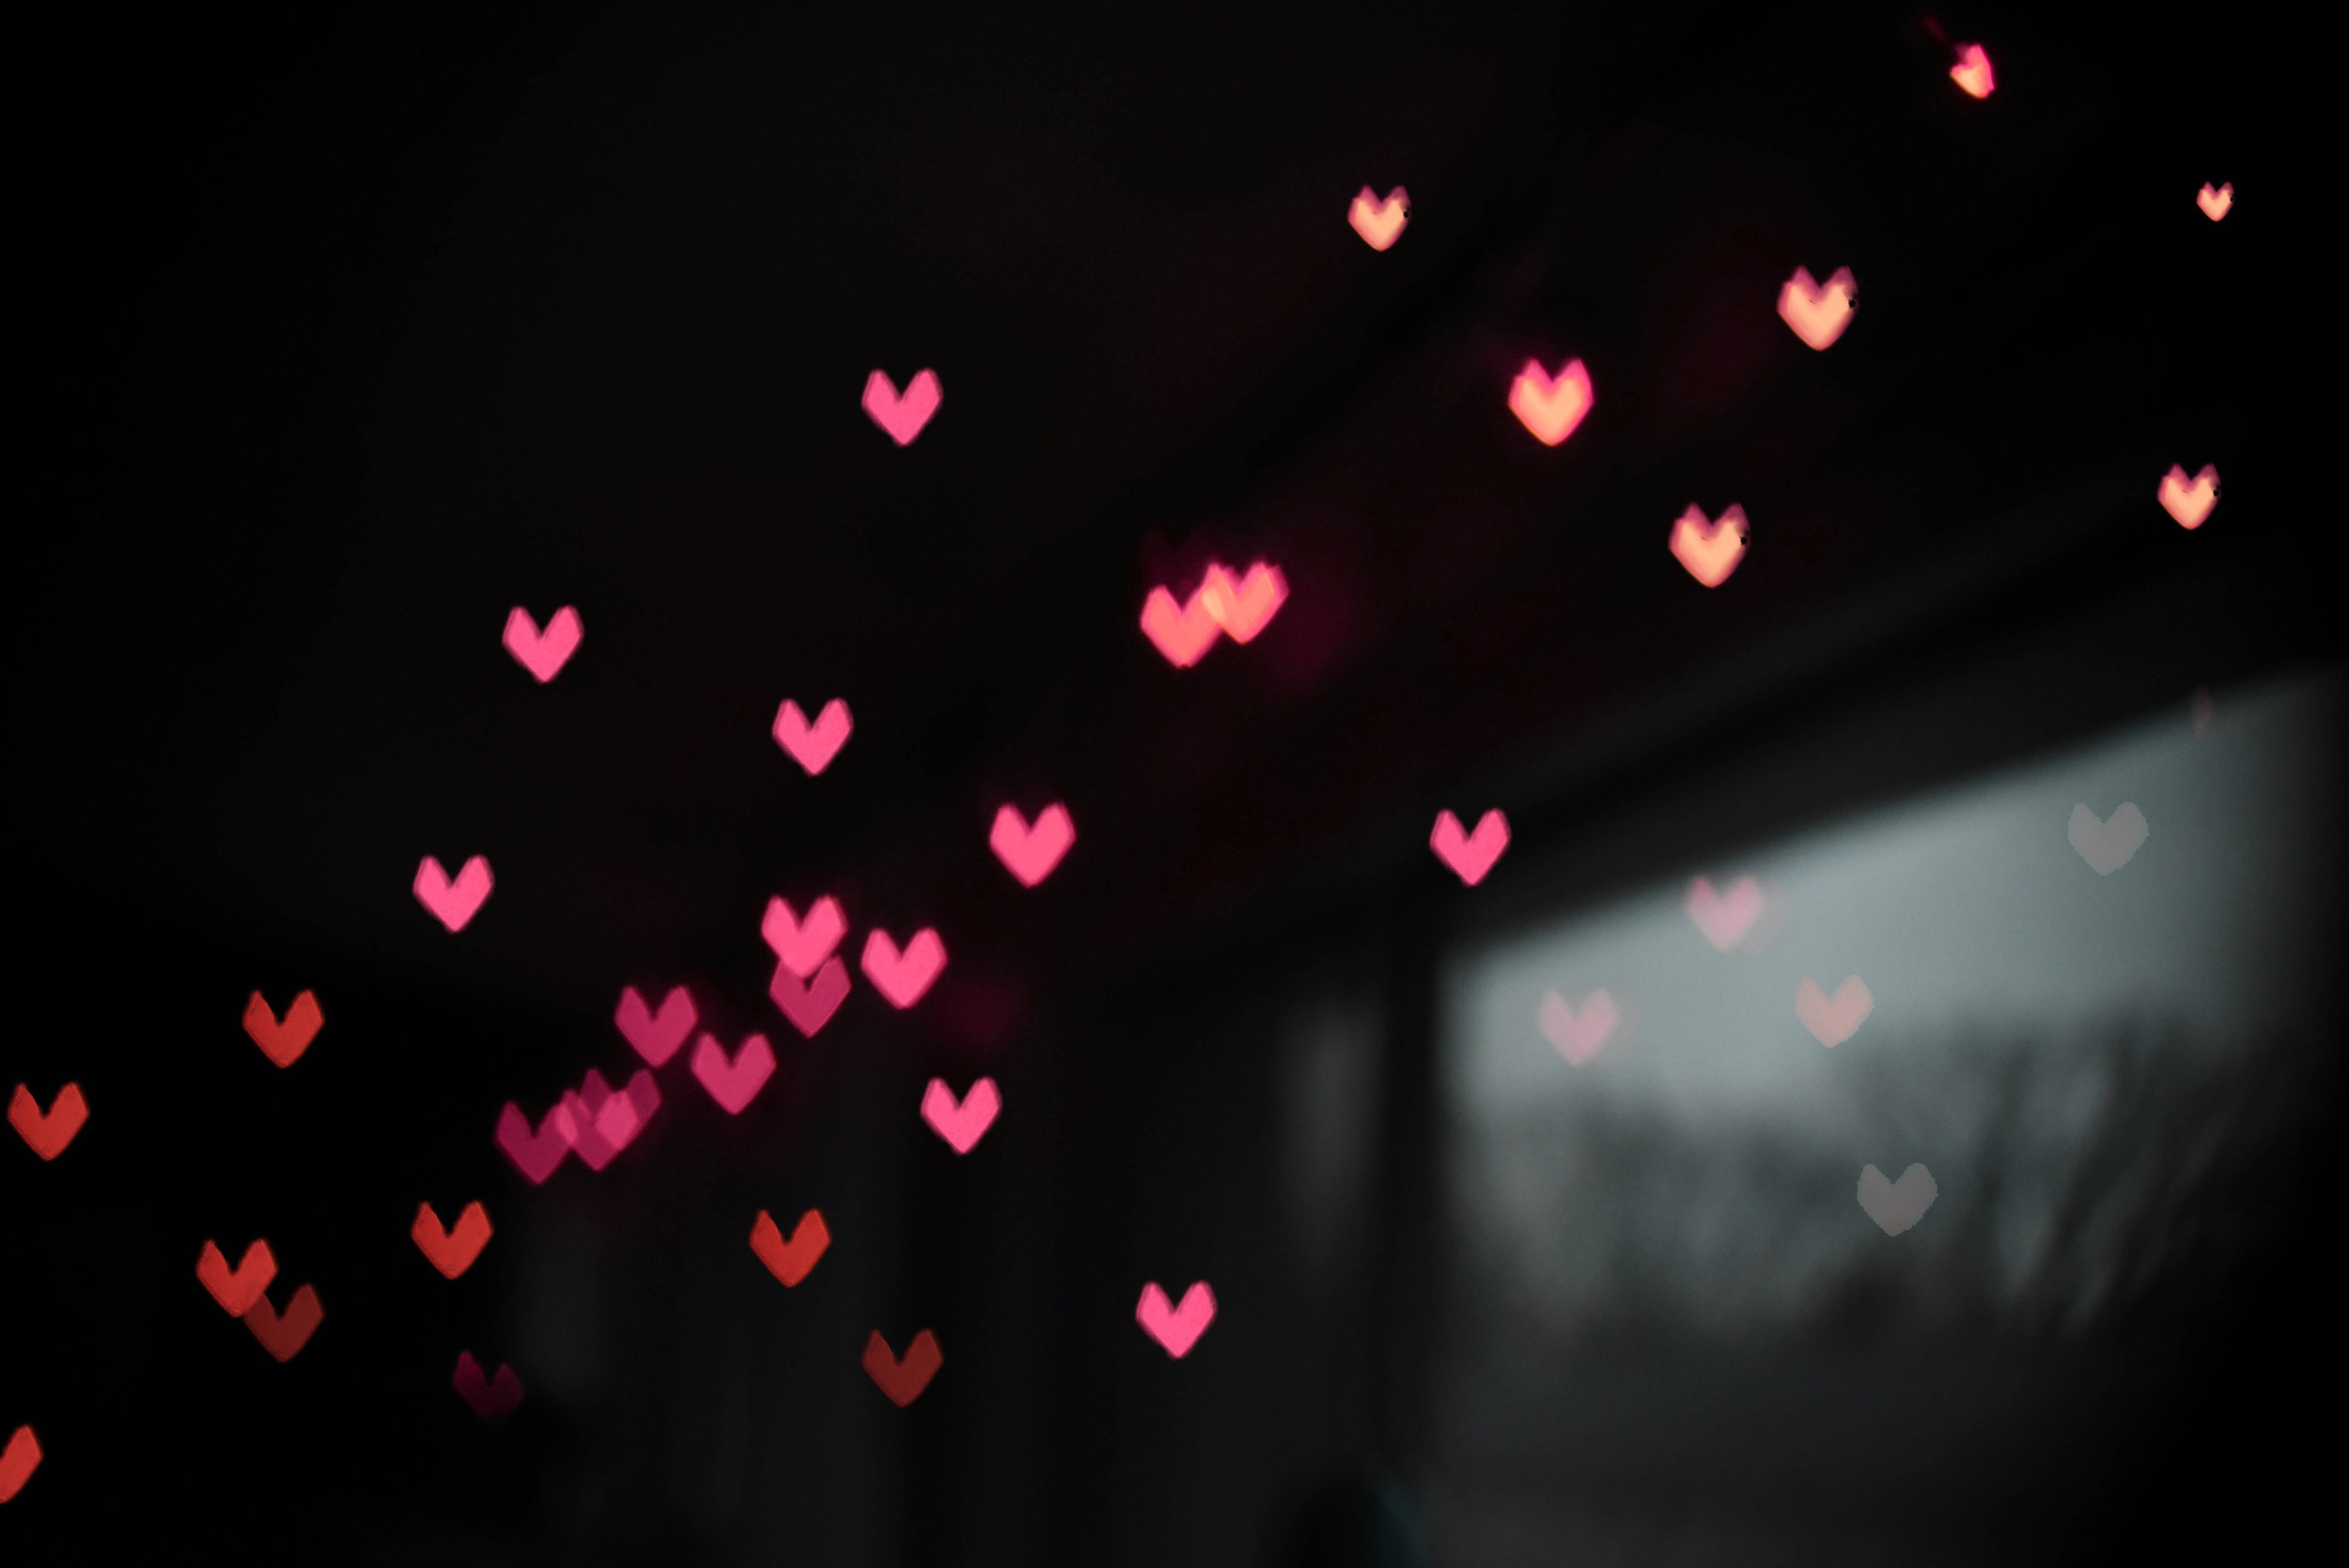 A Movement of Love - Text a special person in your life one thing you appreciate about them each day this weekWrite a note of appreciation and love to someone in your house and place it on their pillow or leave a note on someone's desk at school or workSeek out one person each day that you see in your daily life who you don't normally speak to and learn their name and tell them good morning (insert name) or thank you (insert name). (bagger at grocery, dry cleaner, bus driver, person stocking produce etc…)Text this number 706-202-4003 with the word LOVE to receive a text each day this week with a note of love for you to read in less than 60 seconds